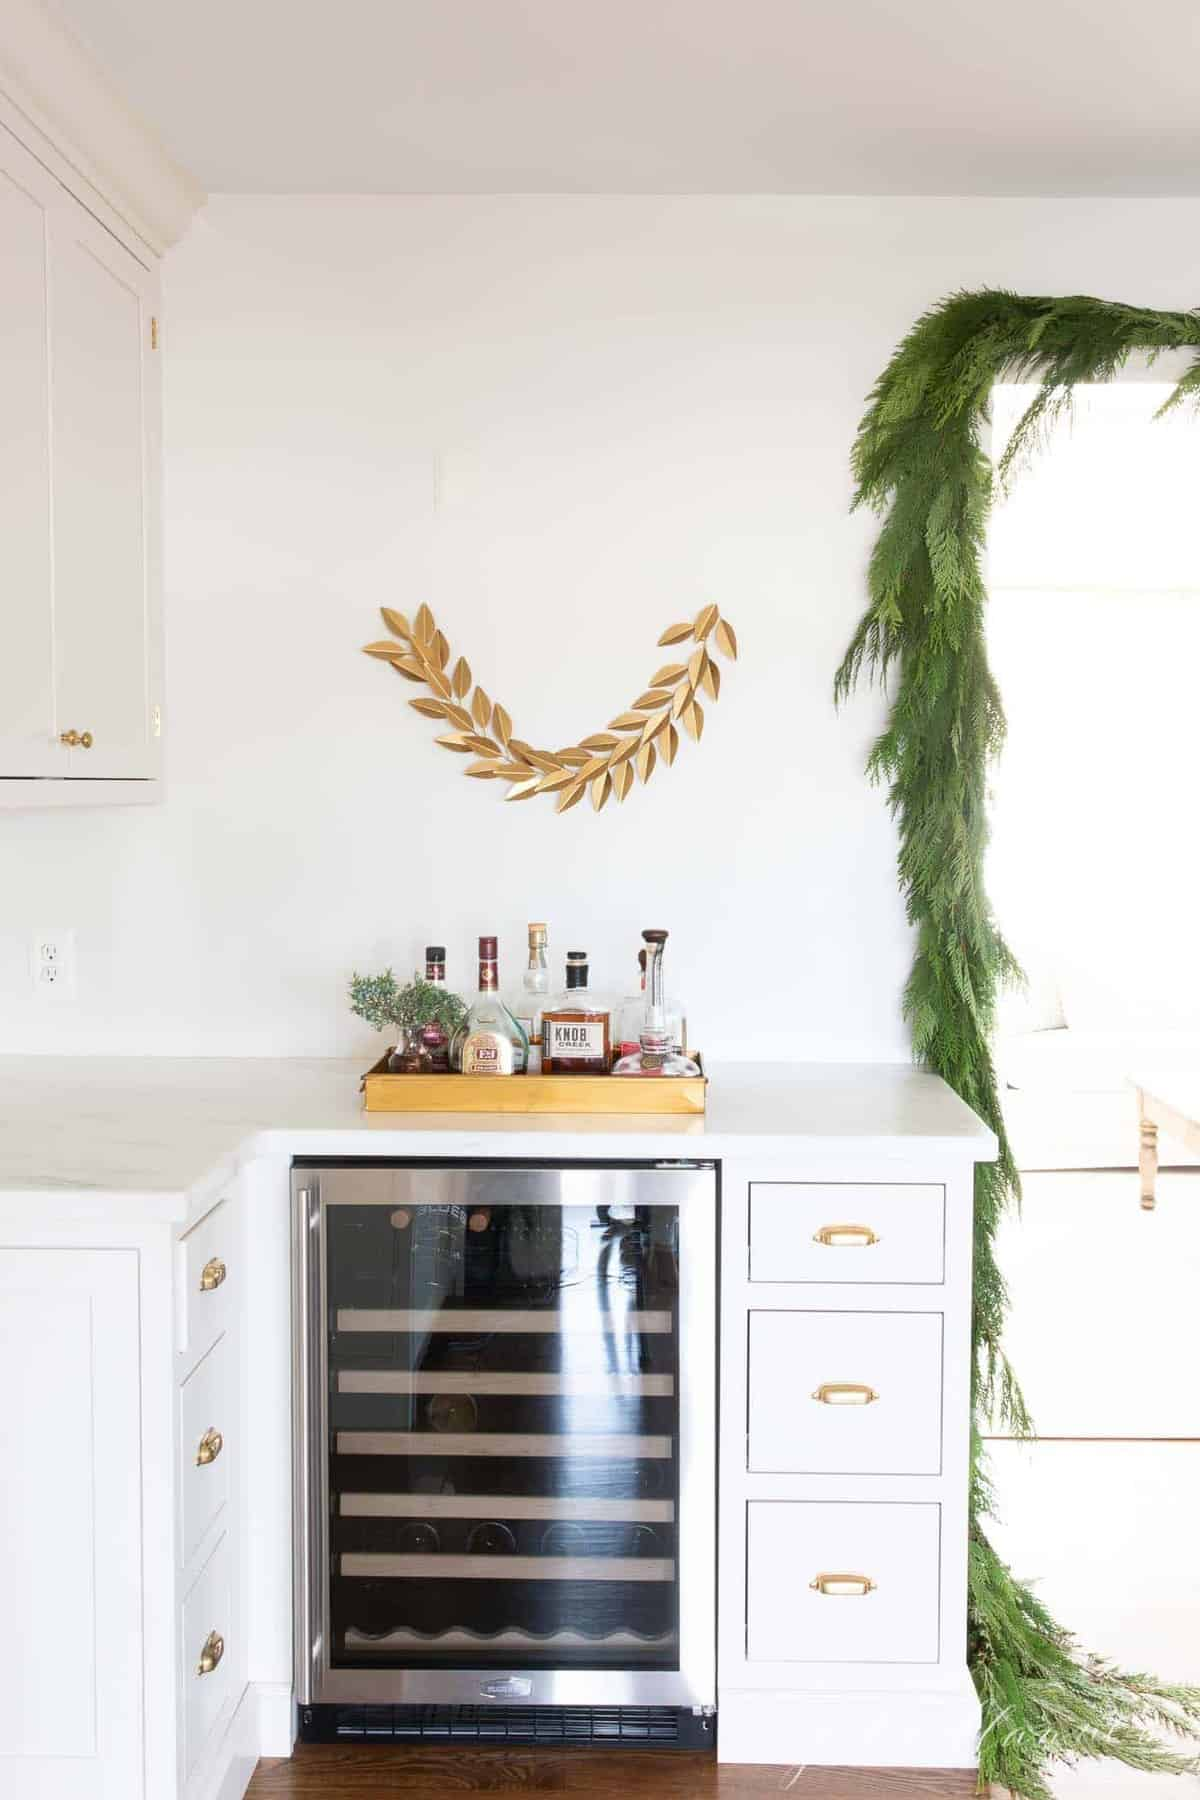 cedar hanging over door frame with gold laurel wreath over bar